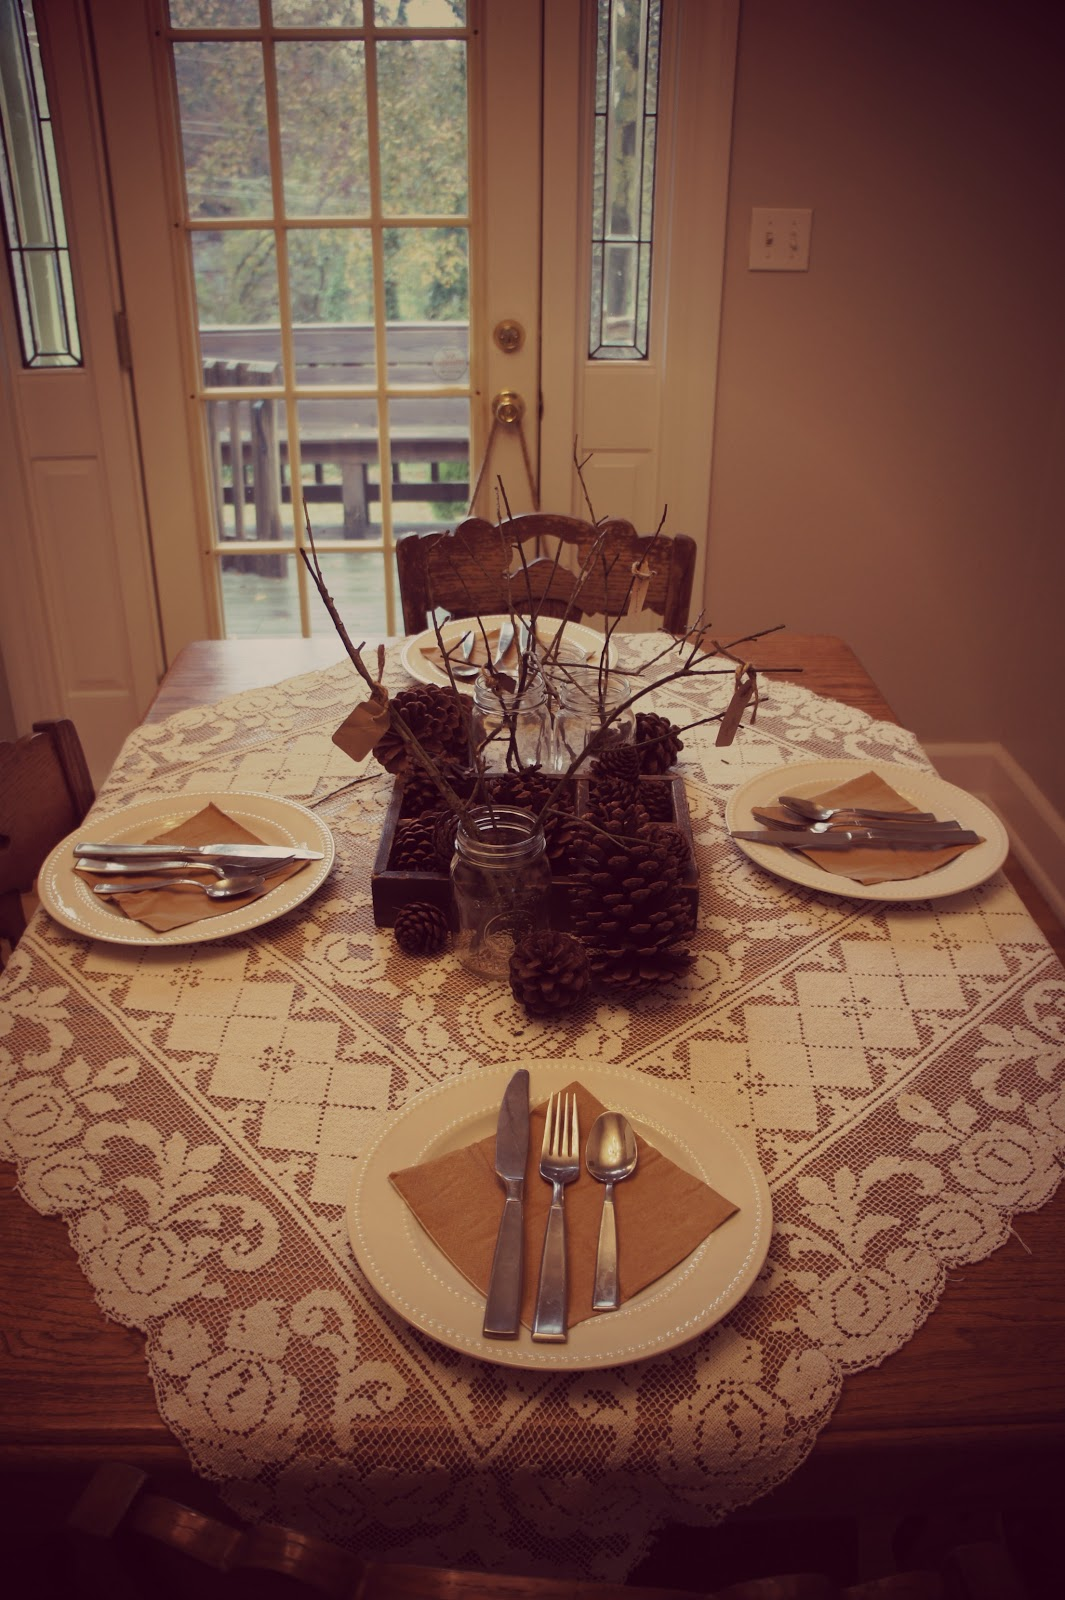 I found small branches and twigs that I added to Dollar Tree Mason jars and I also scattered pine cones that Iu0027ve collected to the setting. & Frugal Foodie Mama: Setting a Gorgeous Thanksgiving Table on the Cheap